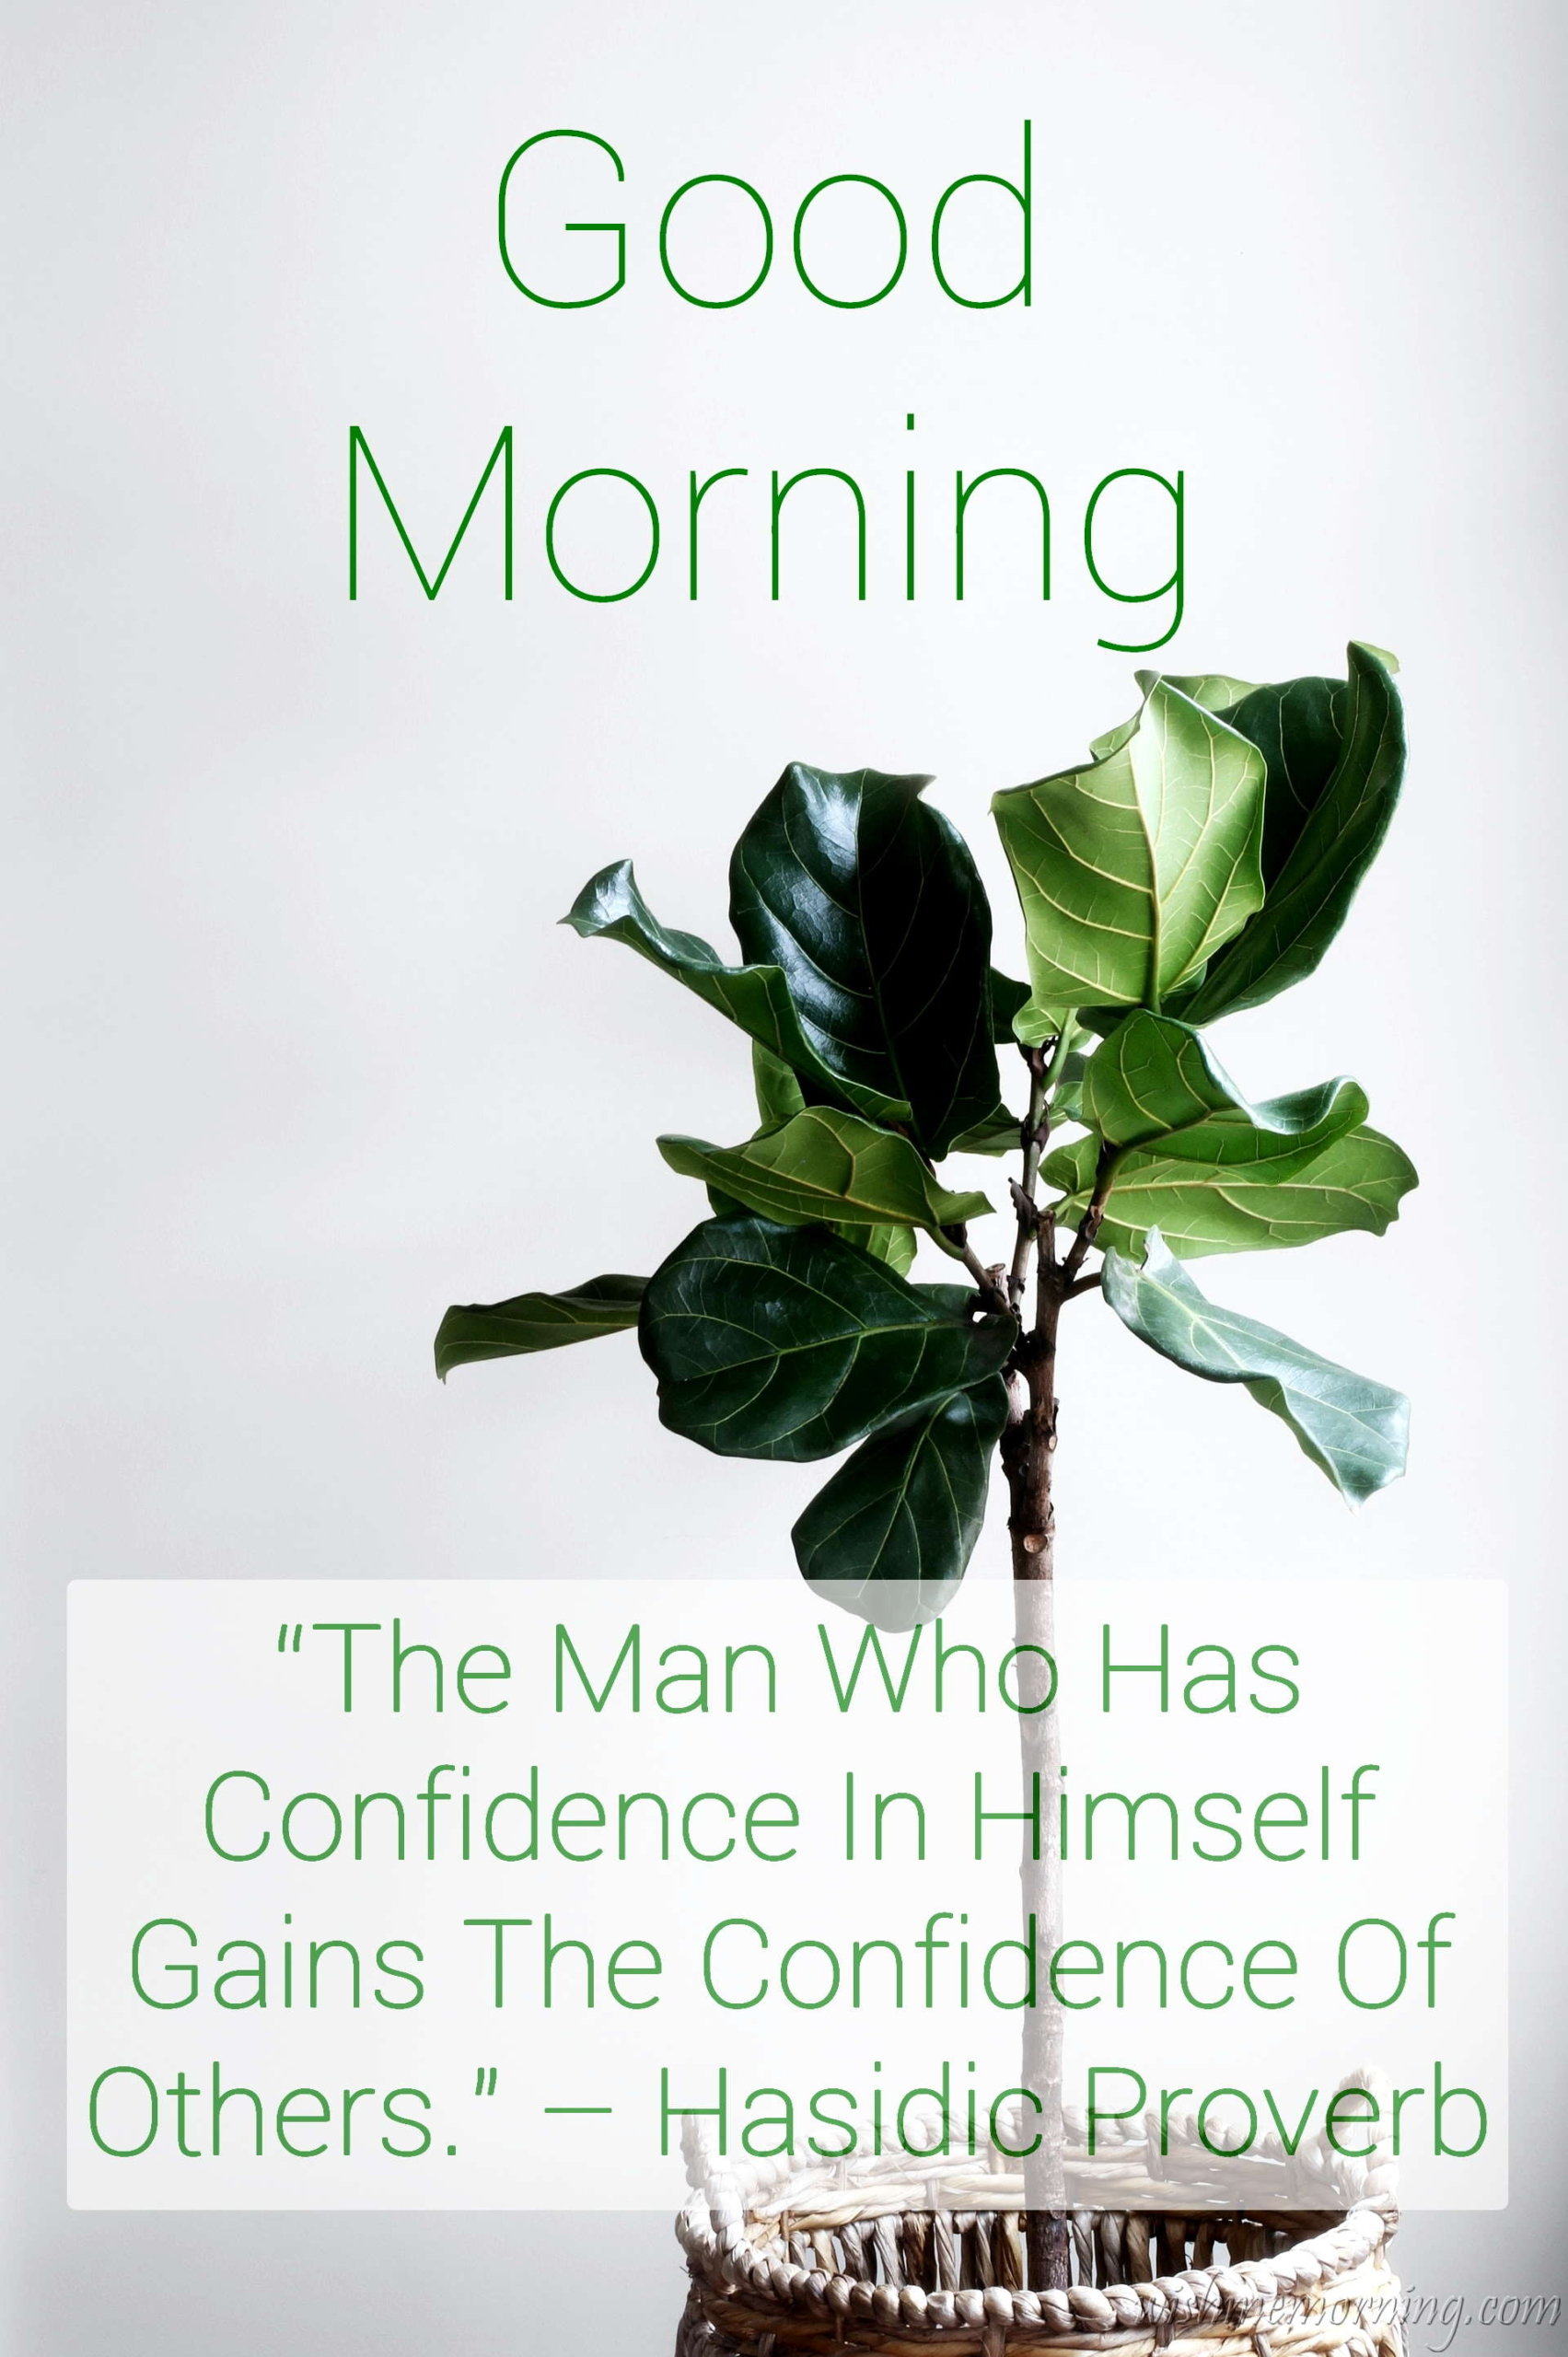 Good Morning Quote Hasidic Proverb Plants Background